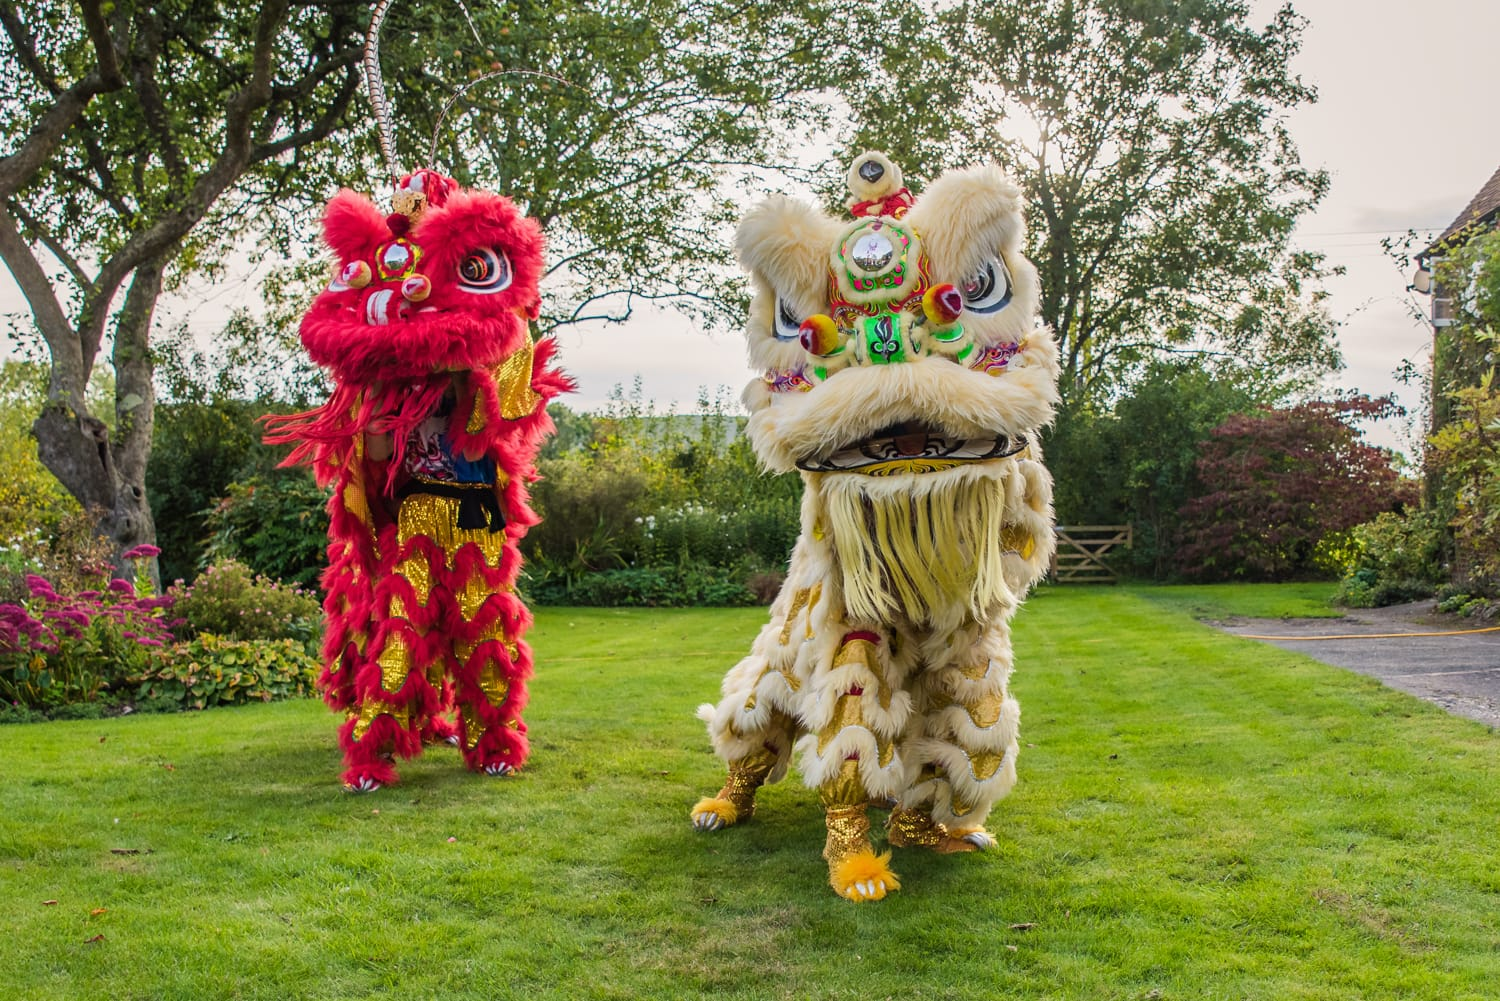 075-wedding chinese-lion-dance.jpg